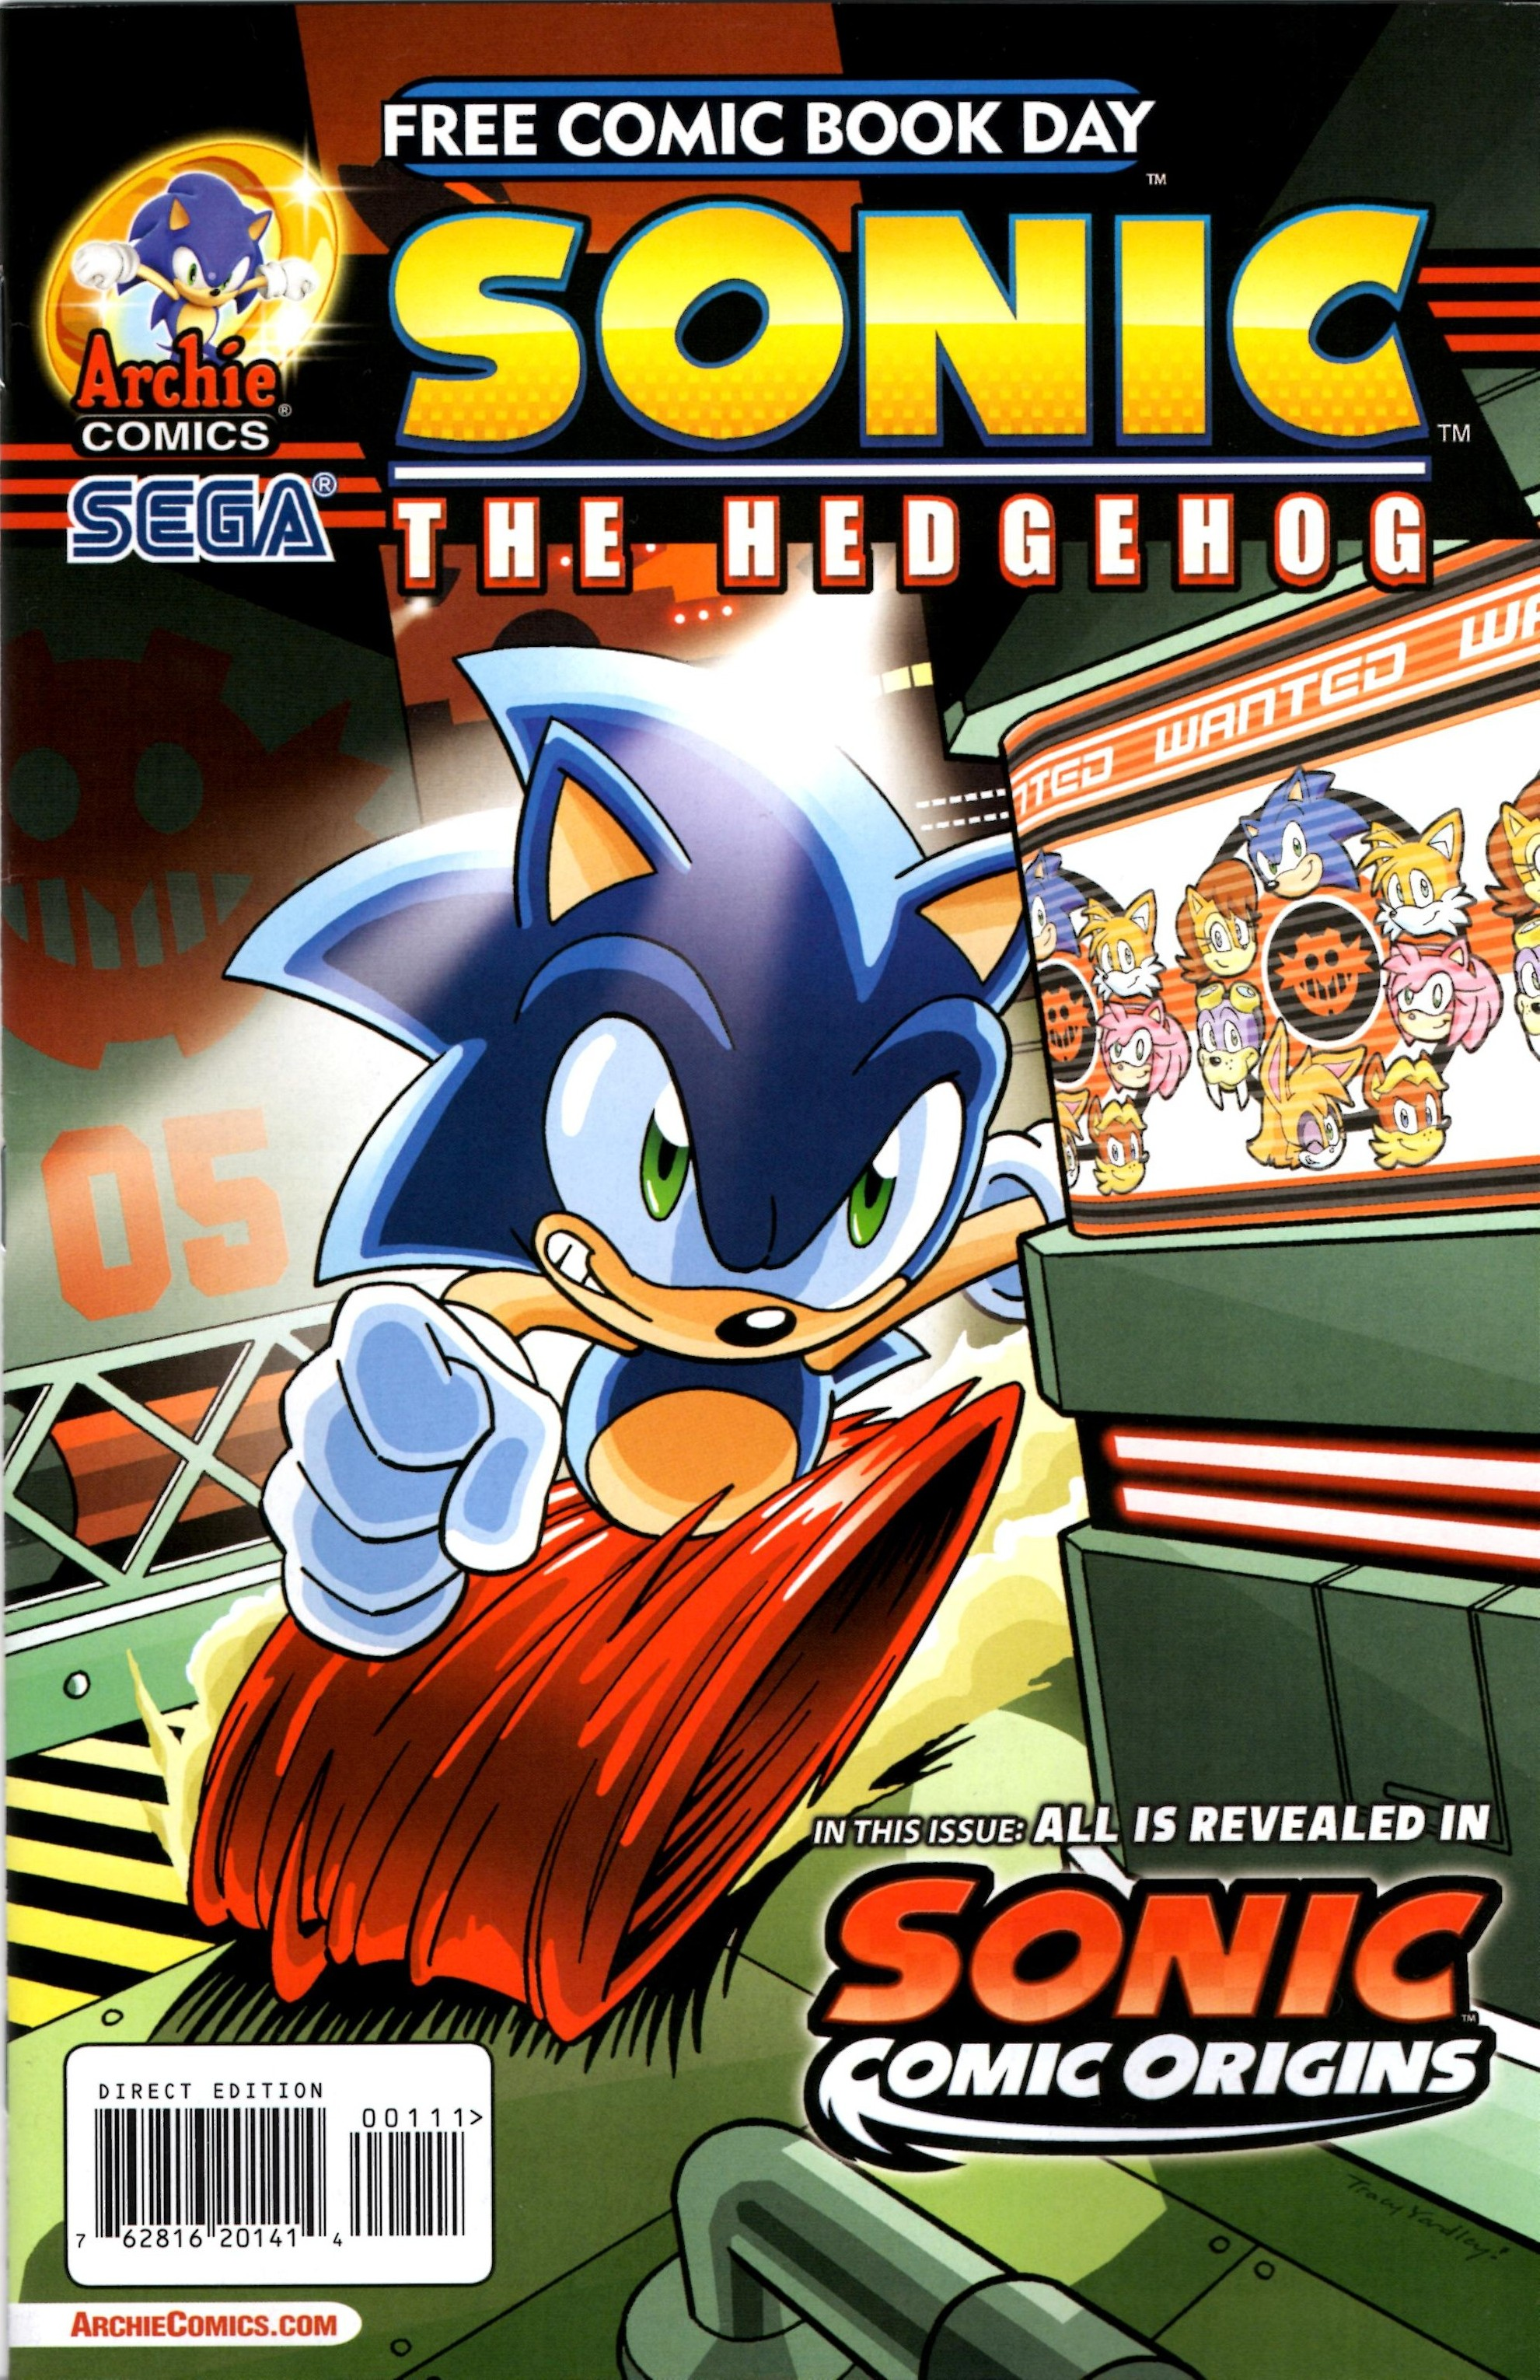 Free Comic Book Day 2014 Archie Sonic The Hedgehog Sonic Comic Origins Viewcomic Reading Comics Online For Free 2019